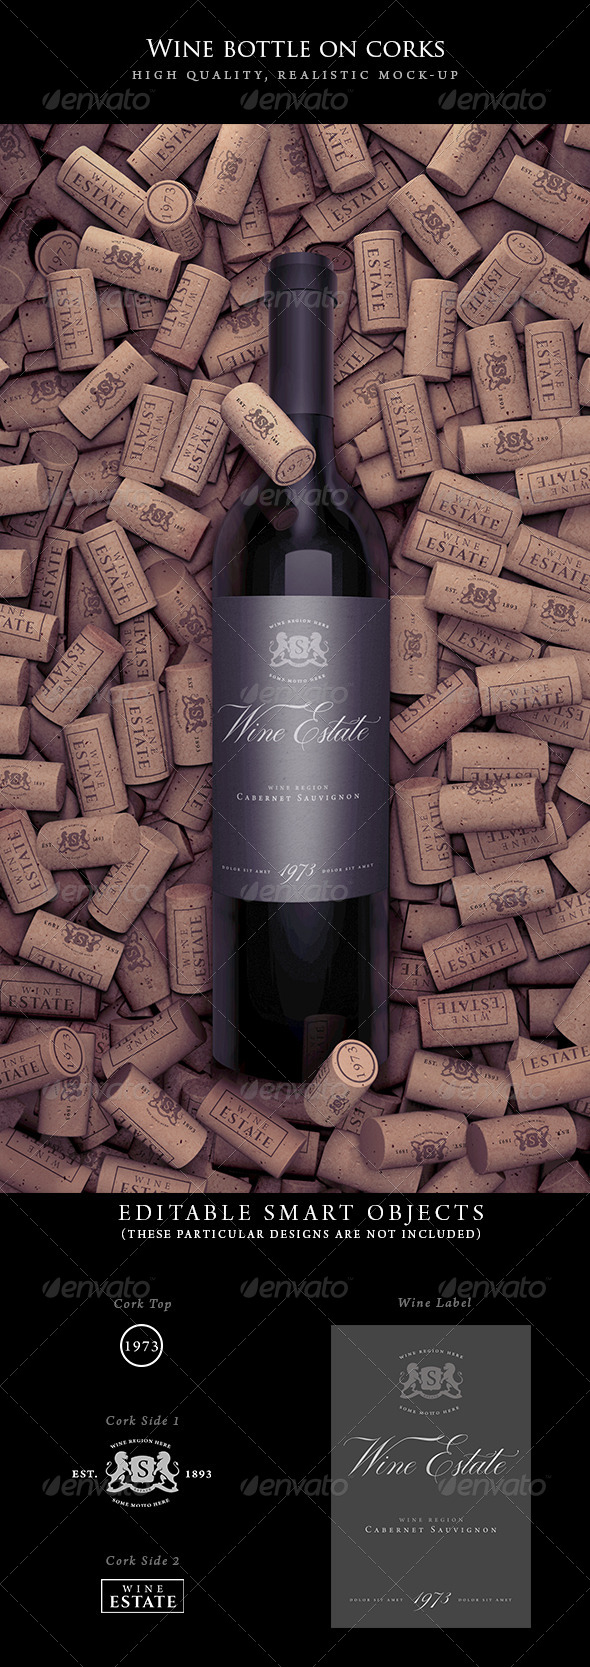 Wine Bottle on Corks Mockup